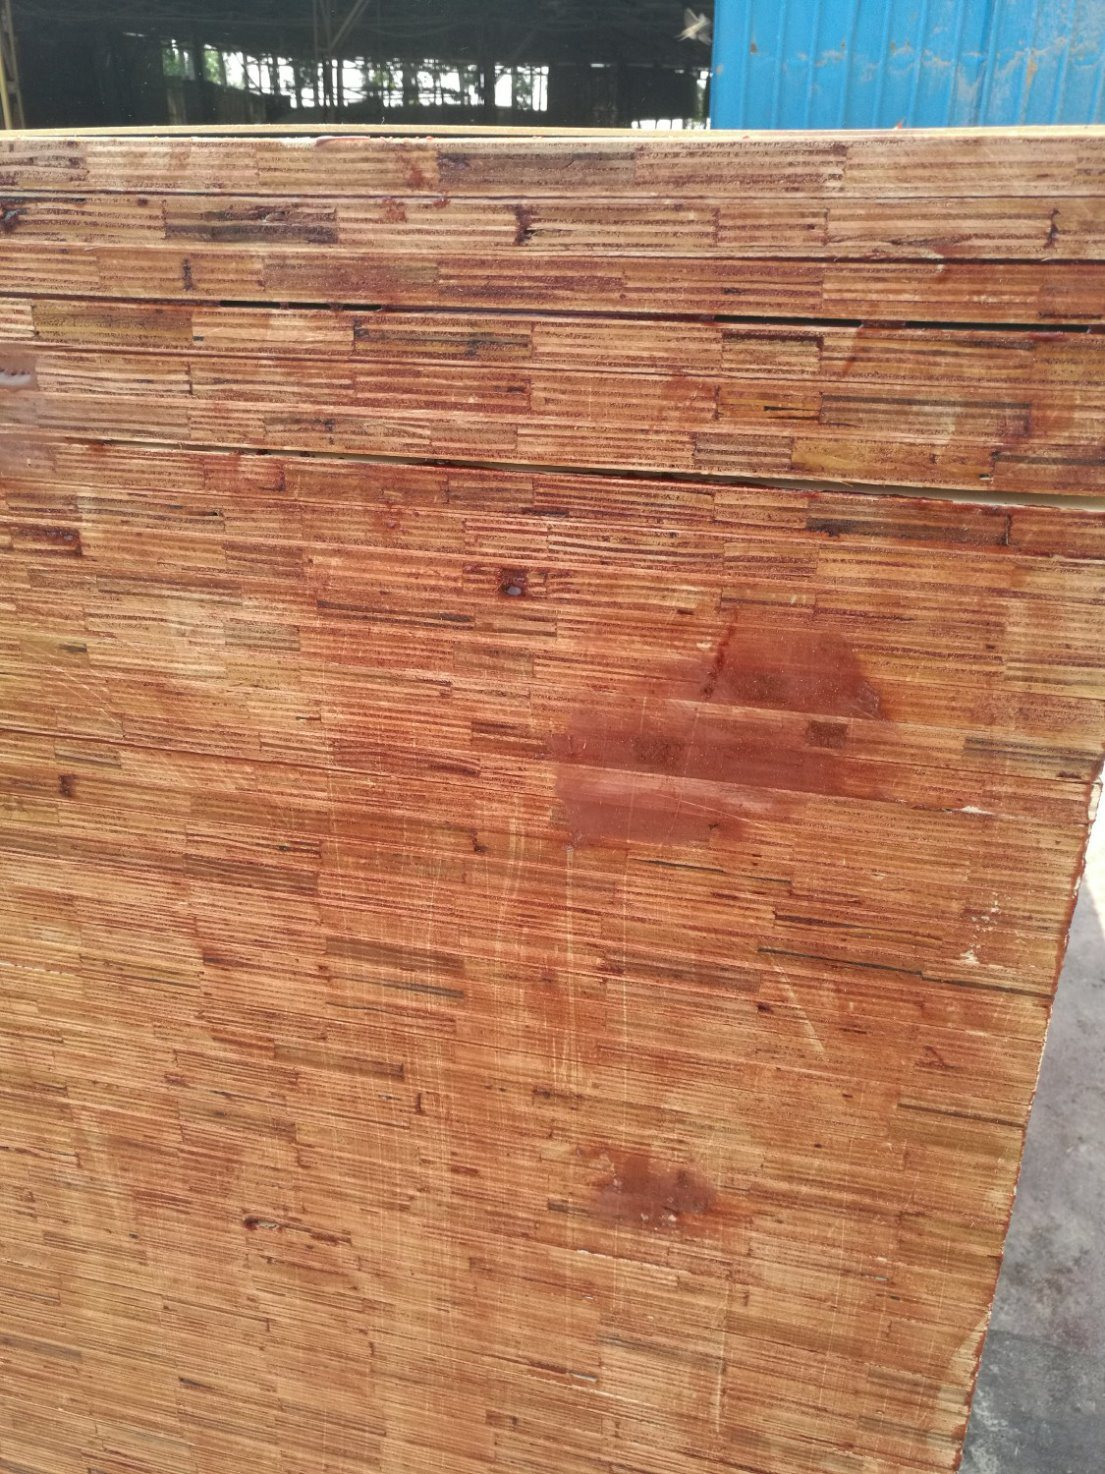 Reusage 5 Times Film Faced Plywood for Shuttering